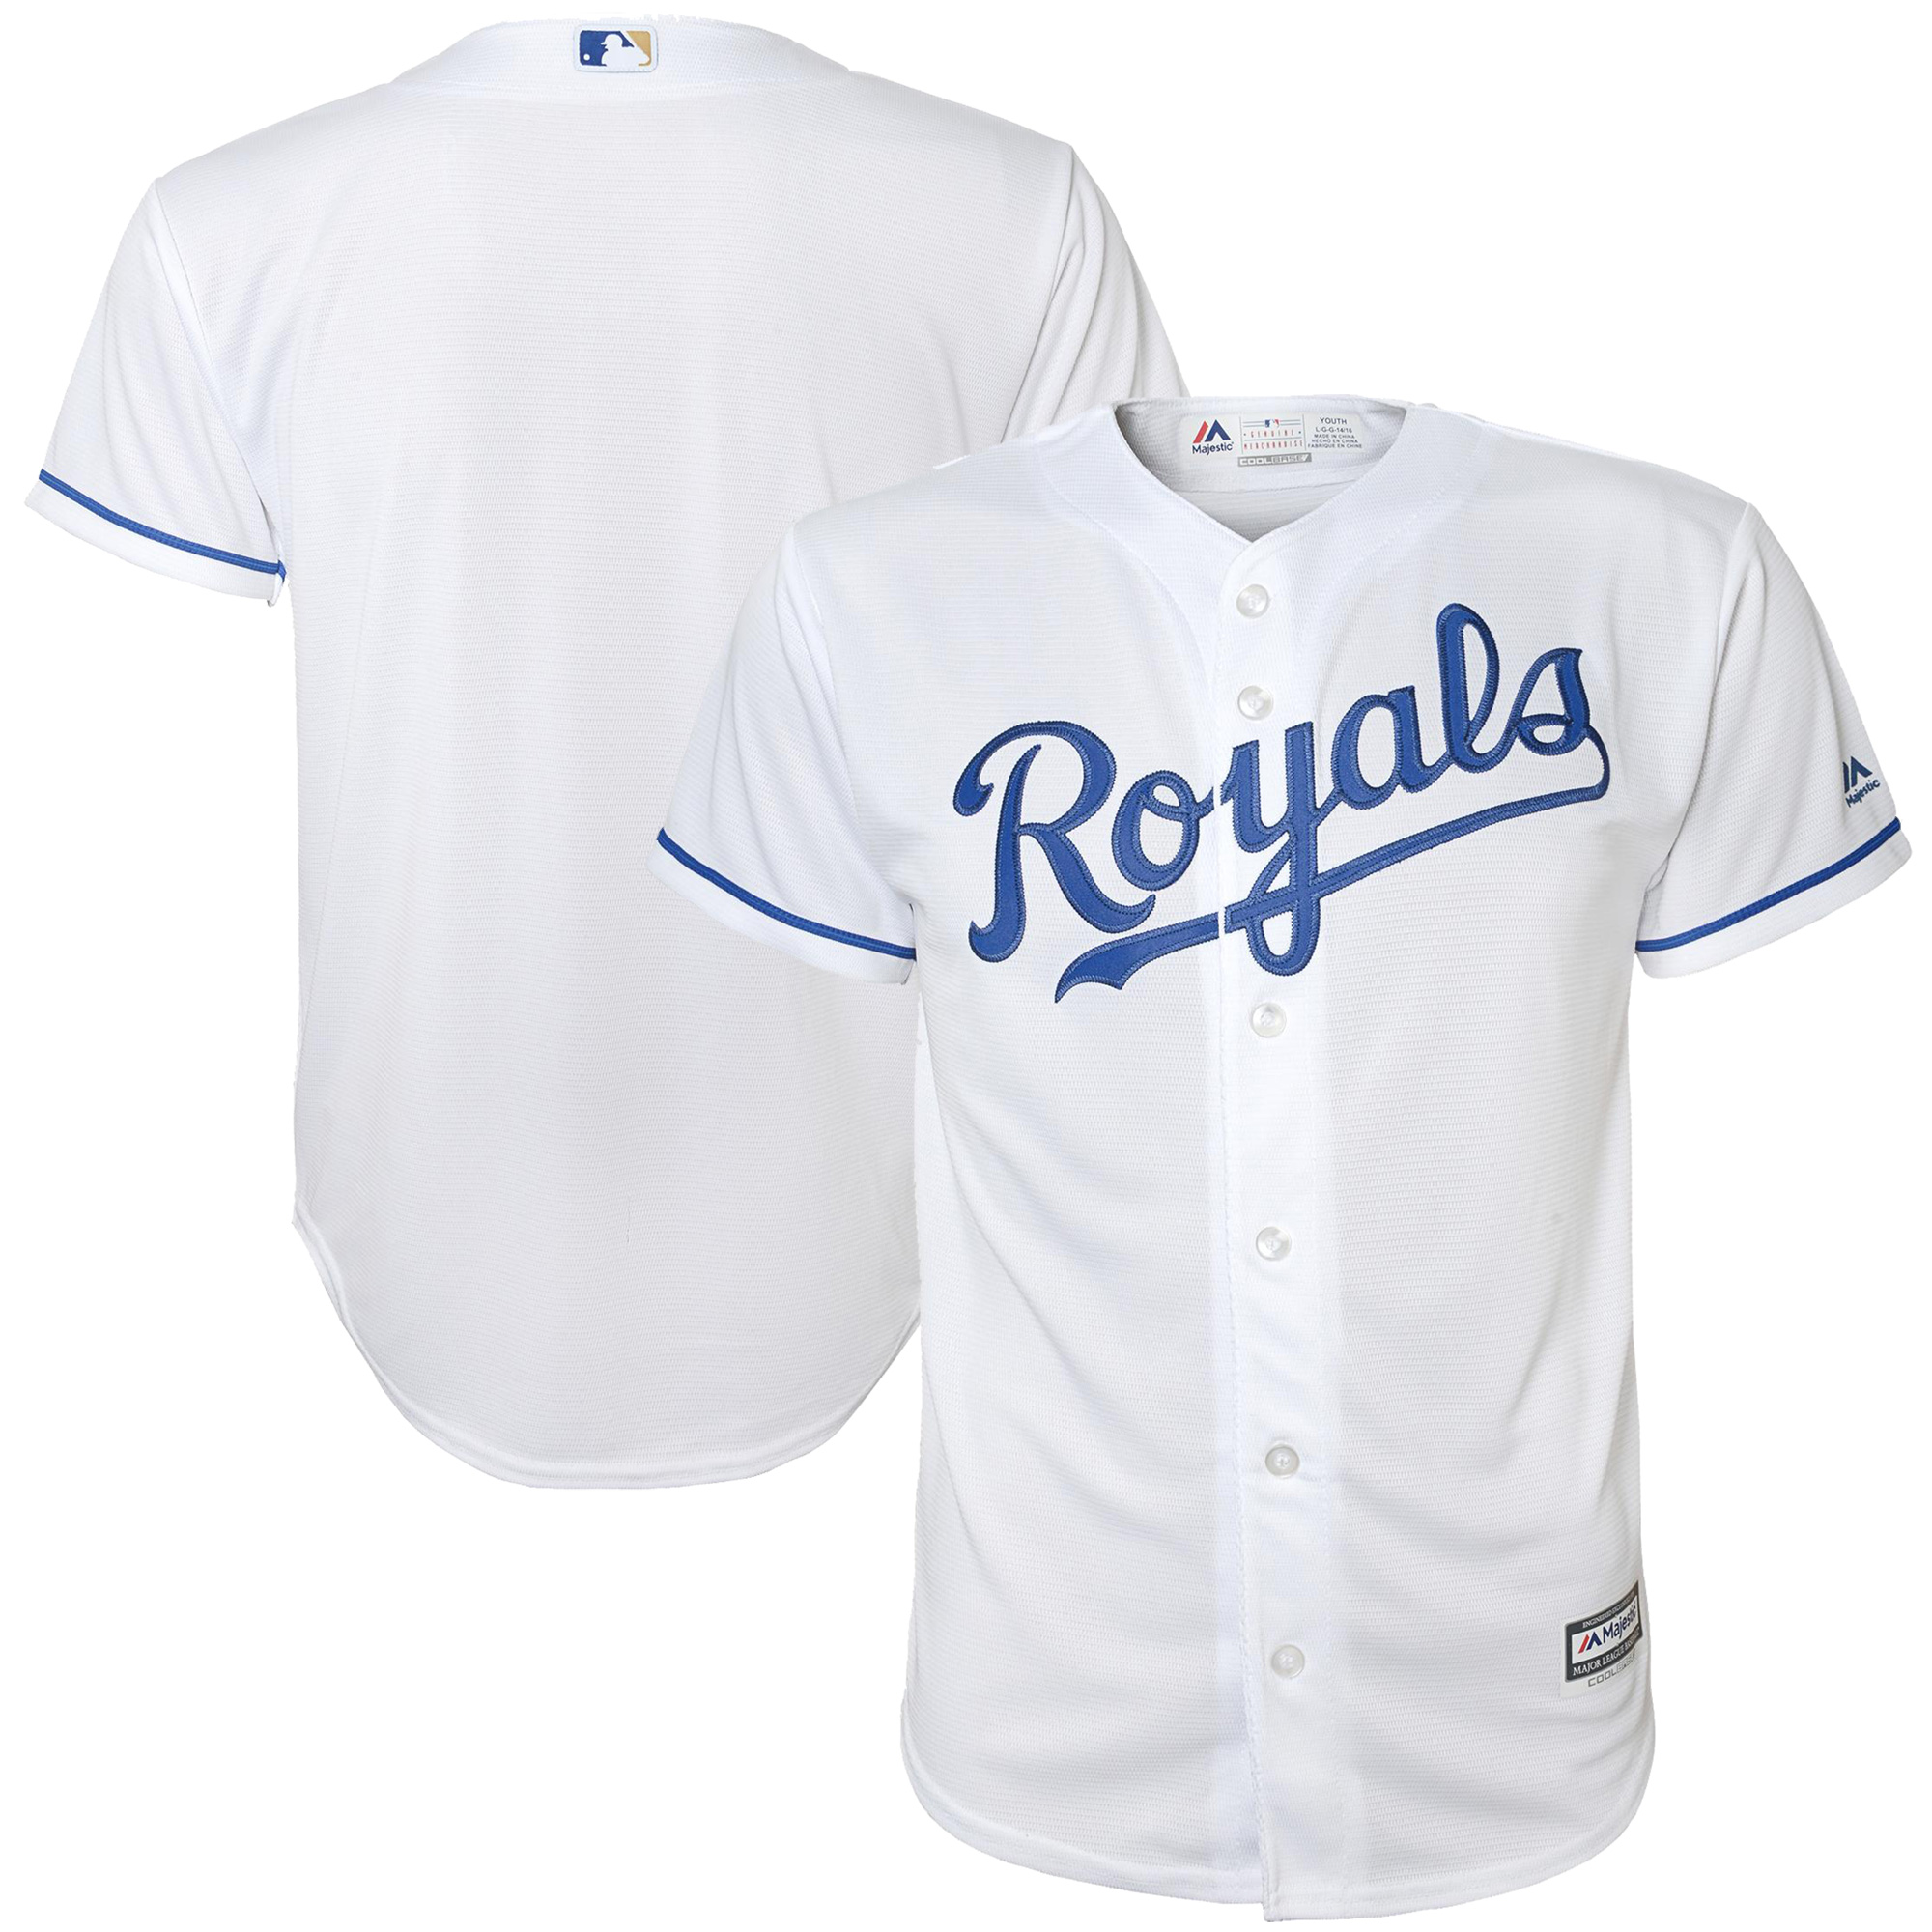 Kansas City Royals Majestic Preschool Official Cool Base Team Jersey - White - 7